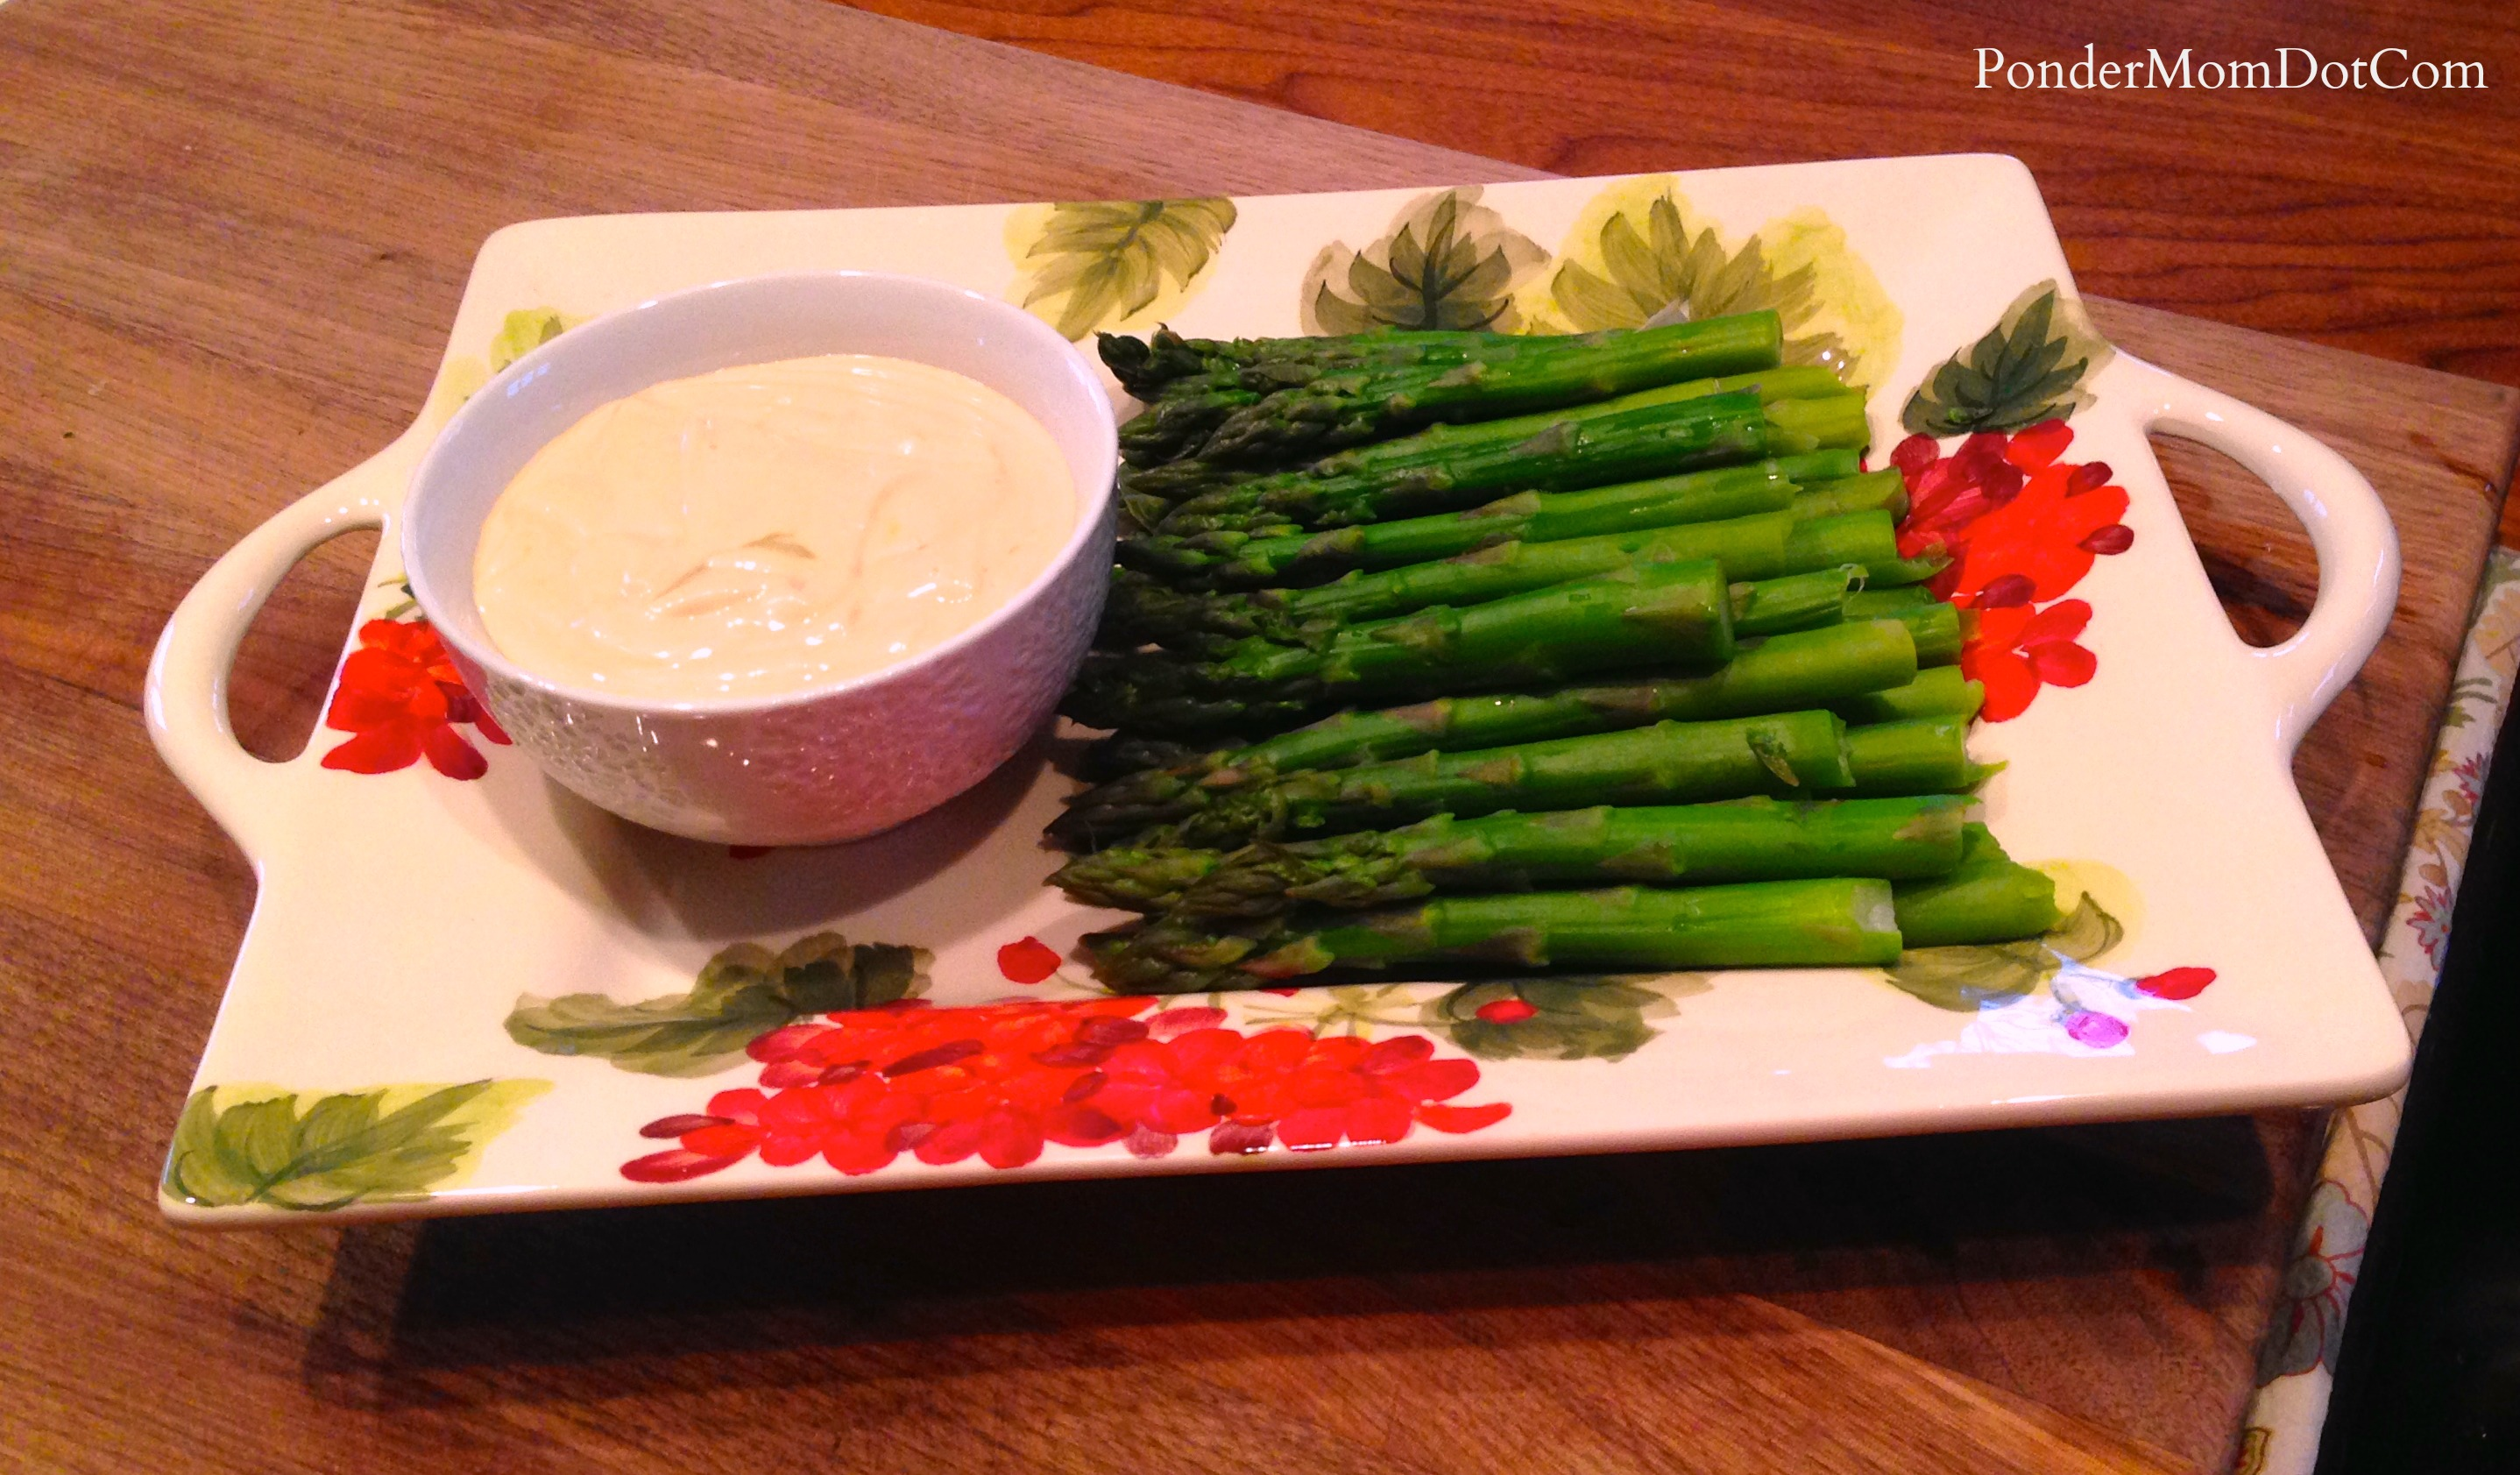 Christmas Appetizer: Asparagus with Wasabi Mayo Dip